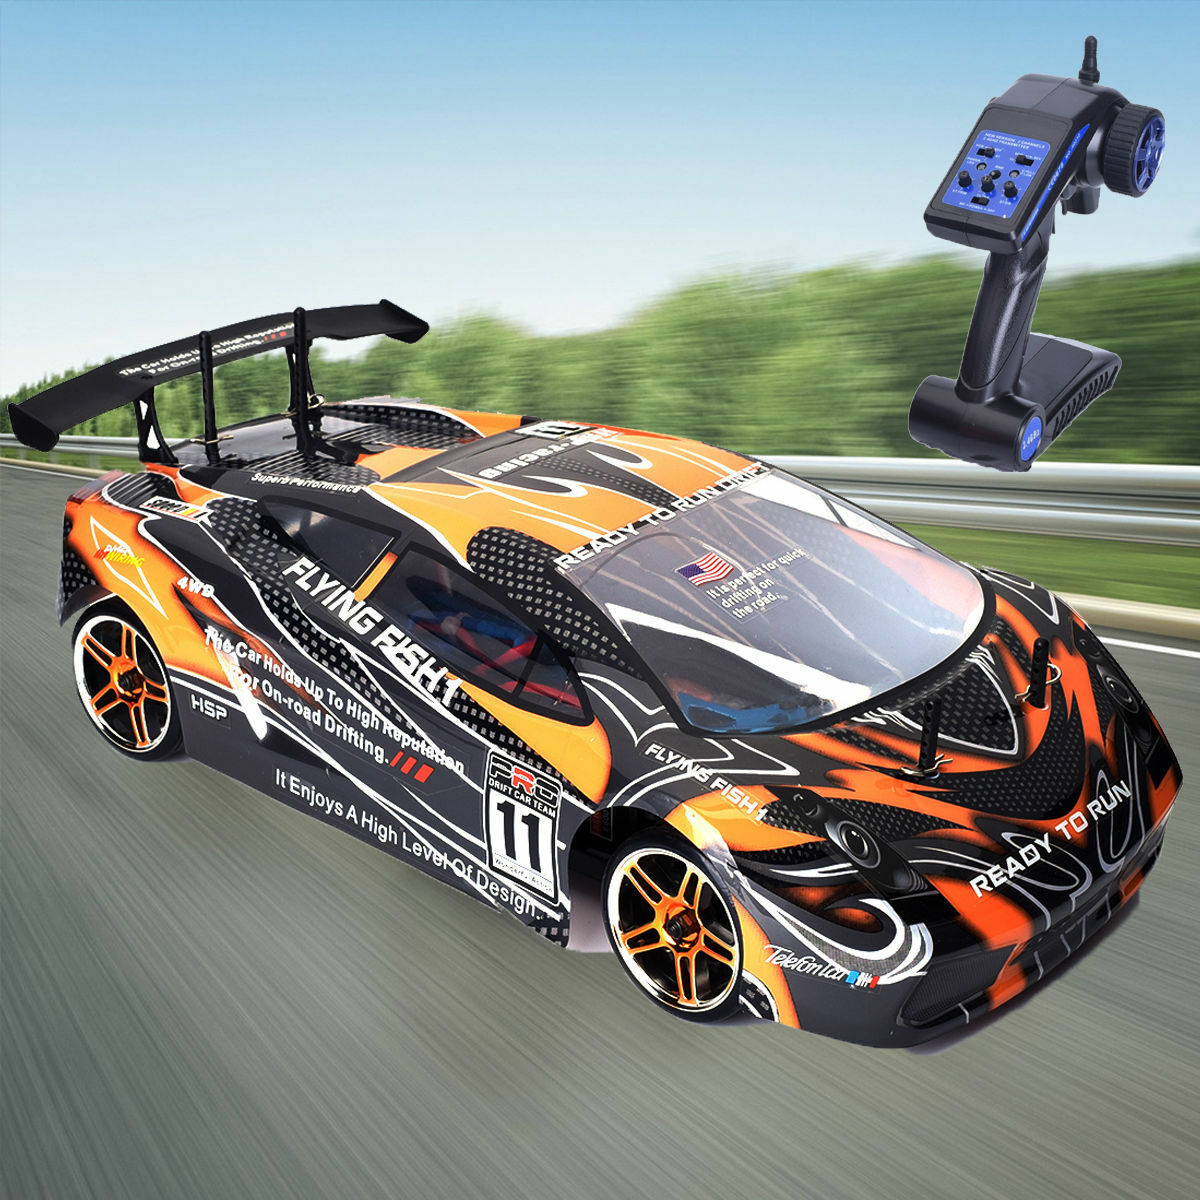 High SPEED 2.4g 1:10 Brushless Motore ON ROAD + LiPo battery remote RC Drift Car